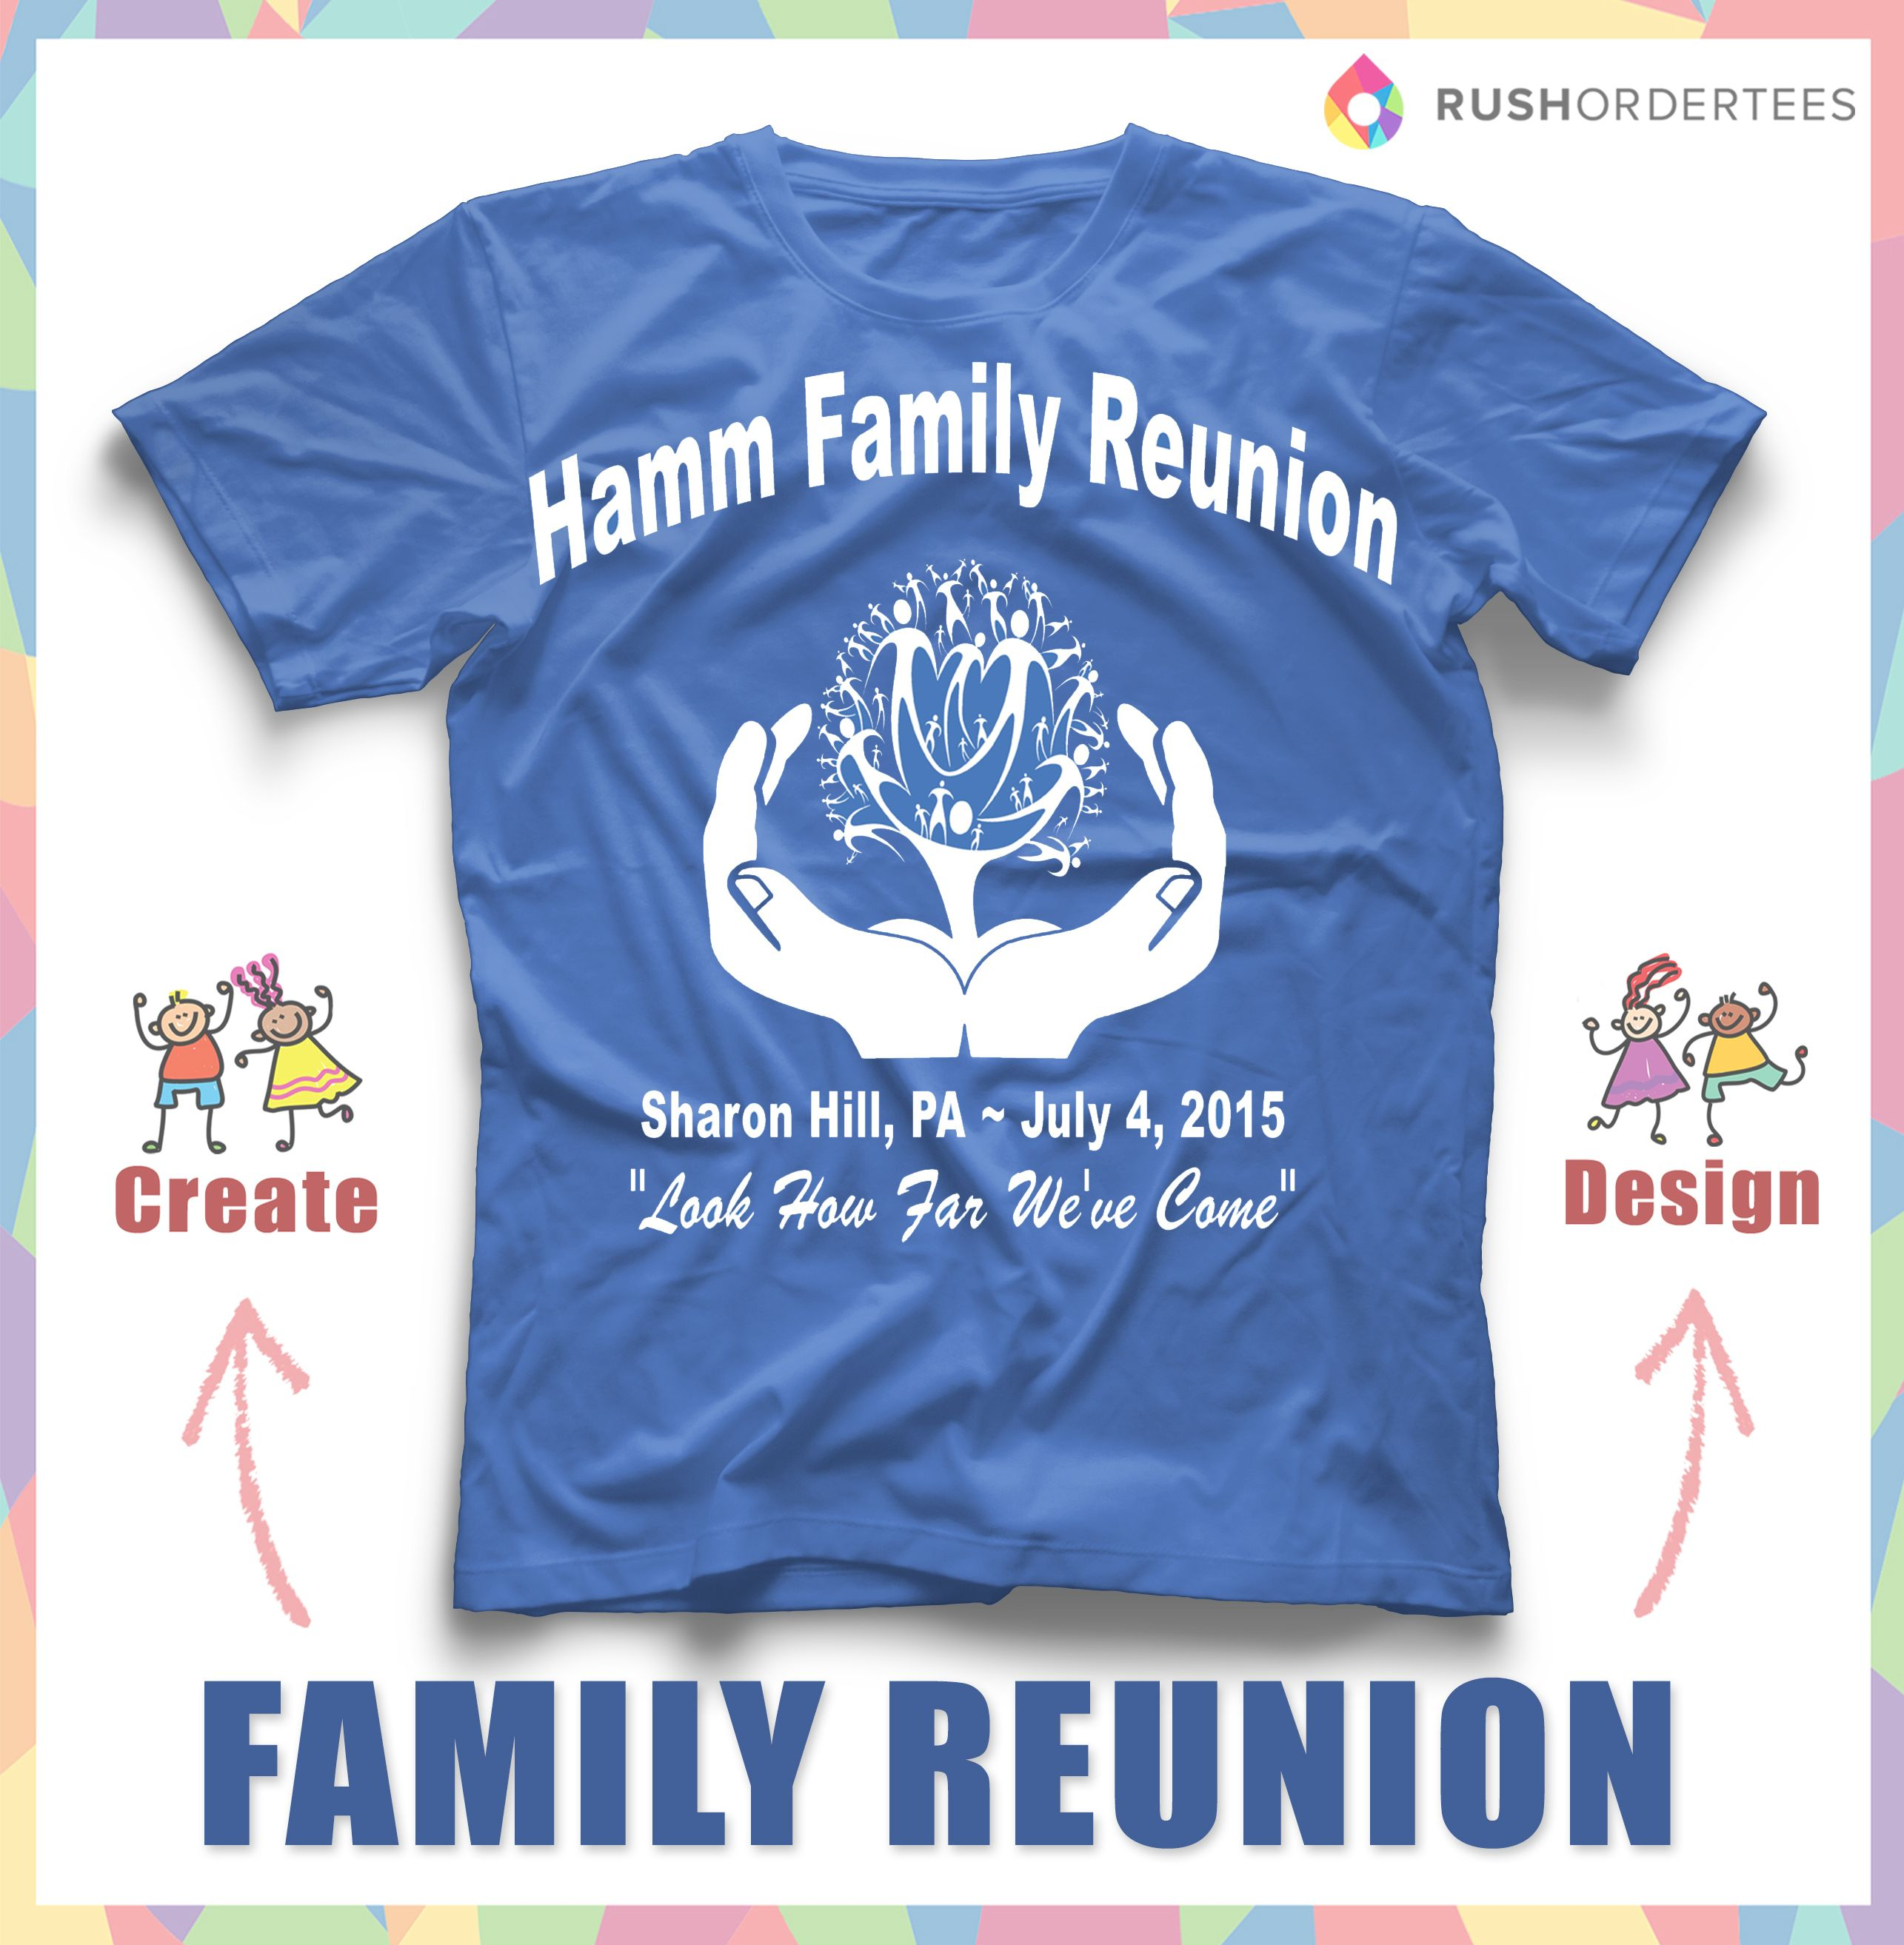 Design t shirt family gathering - 36 Best Family Reunion T Shirt Idea S Images On Pinterest Family Reunions Custom Design And Design Studios